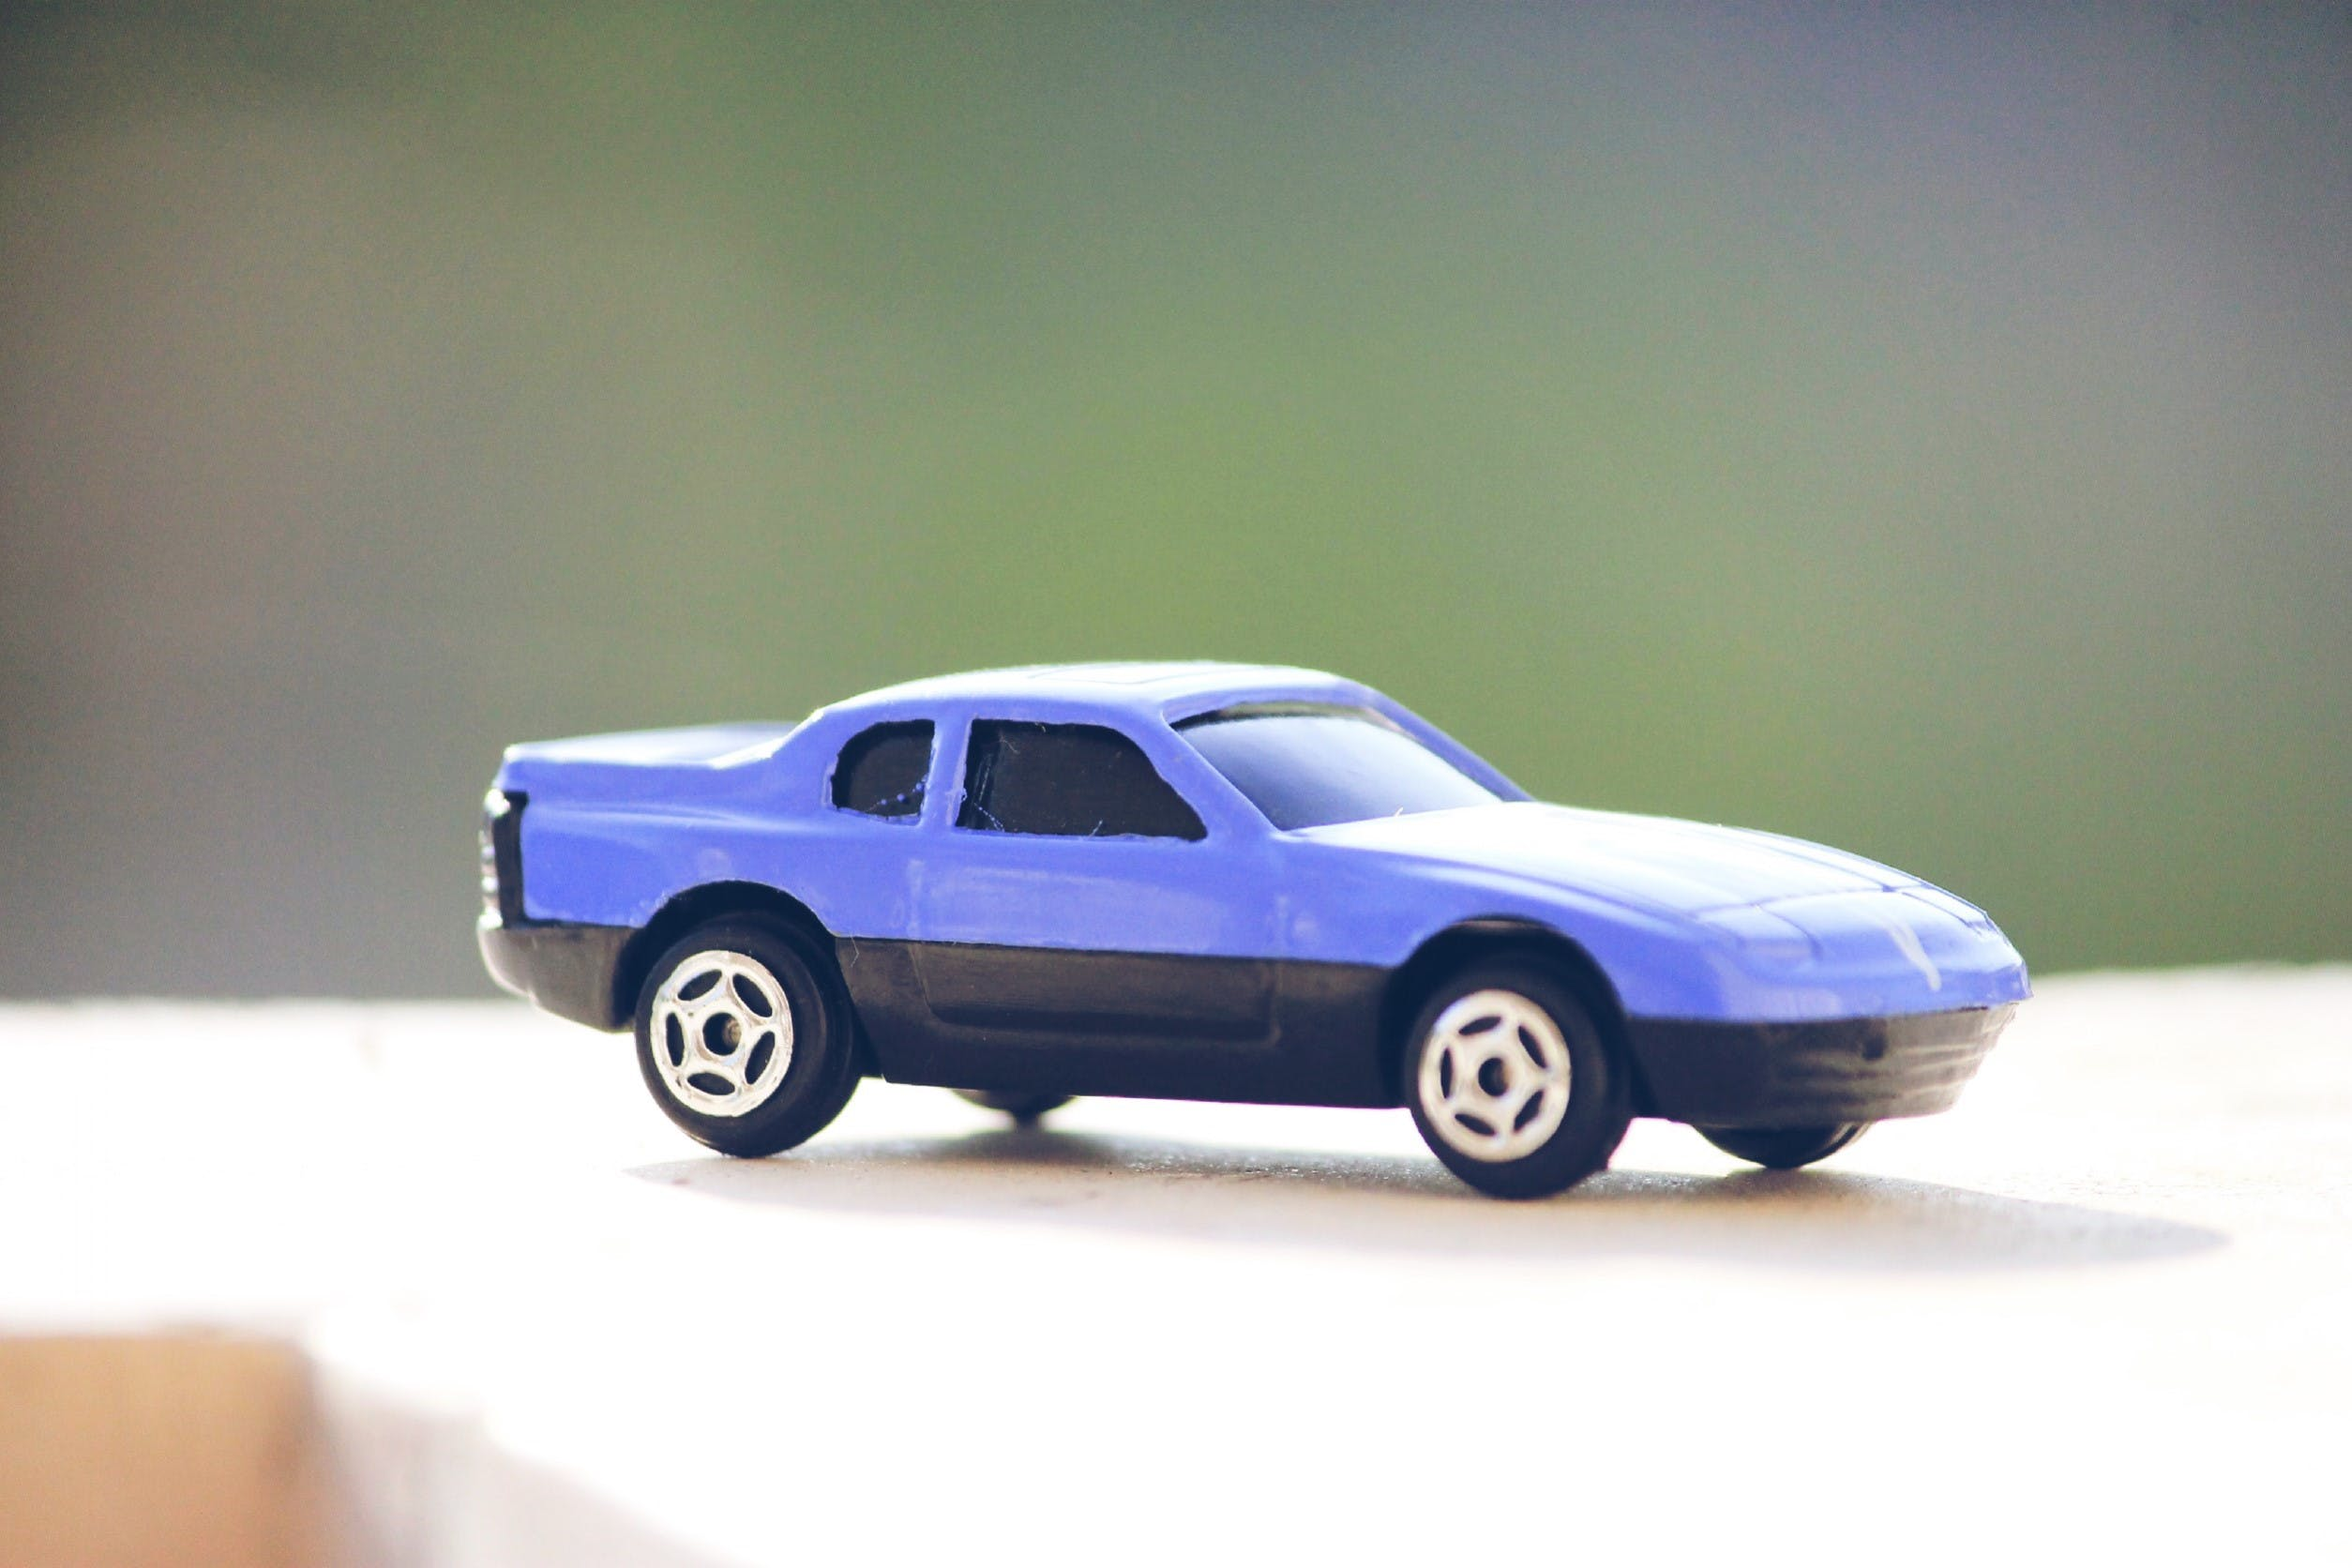 Free stock photo of blue, car, toy, india